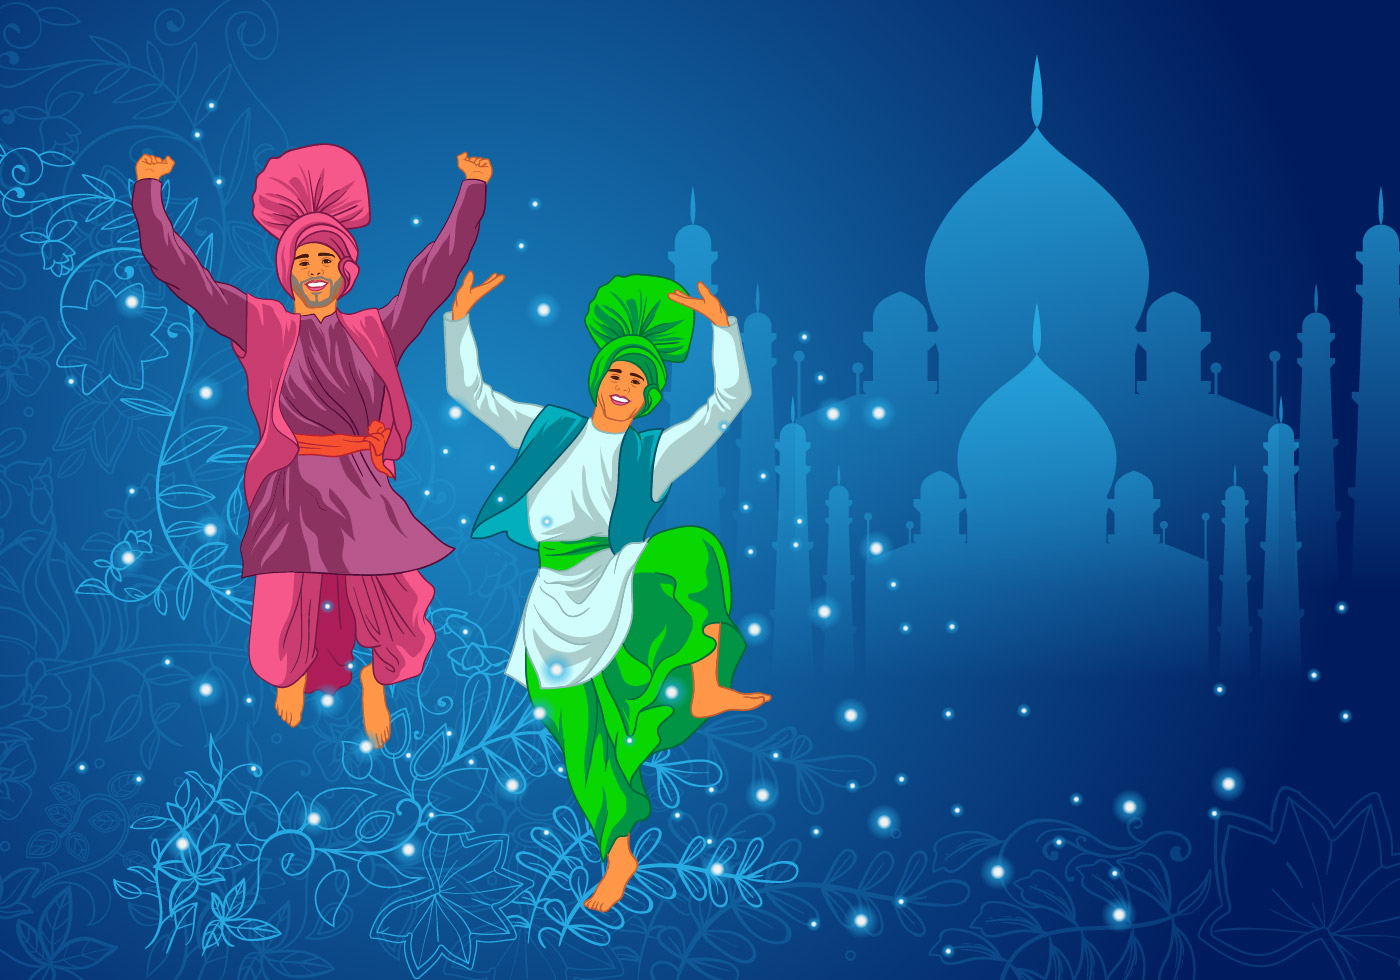 Two Man Performing Bhangra Dance Vector - Download Free ...